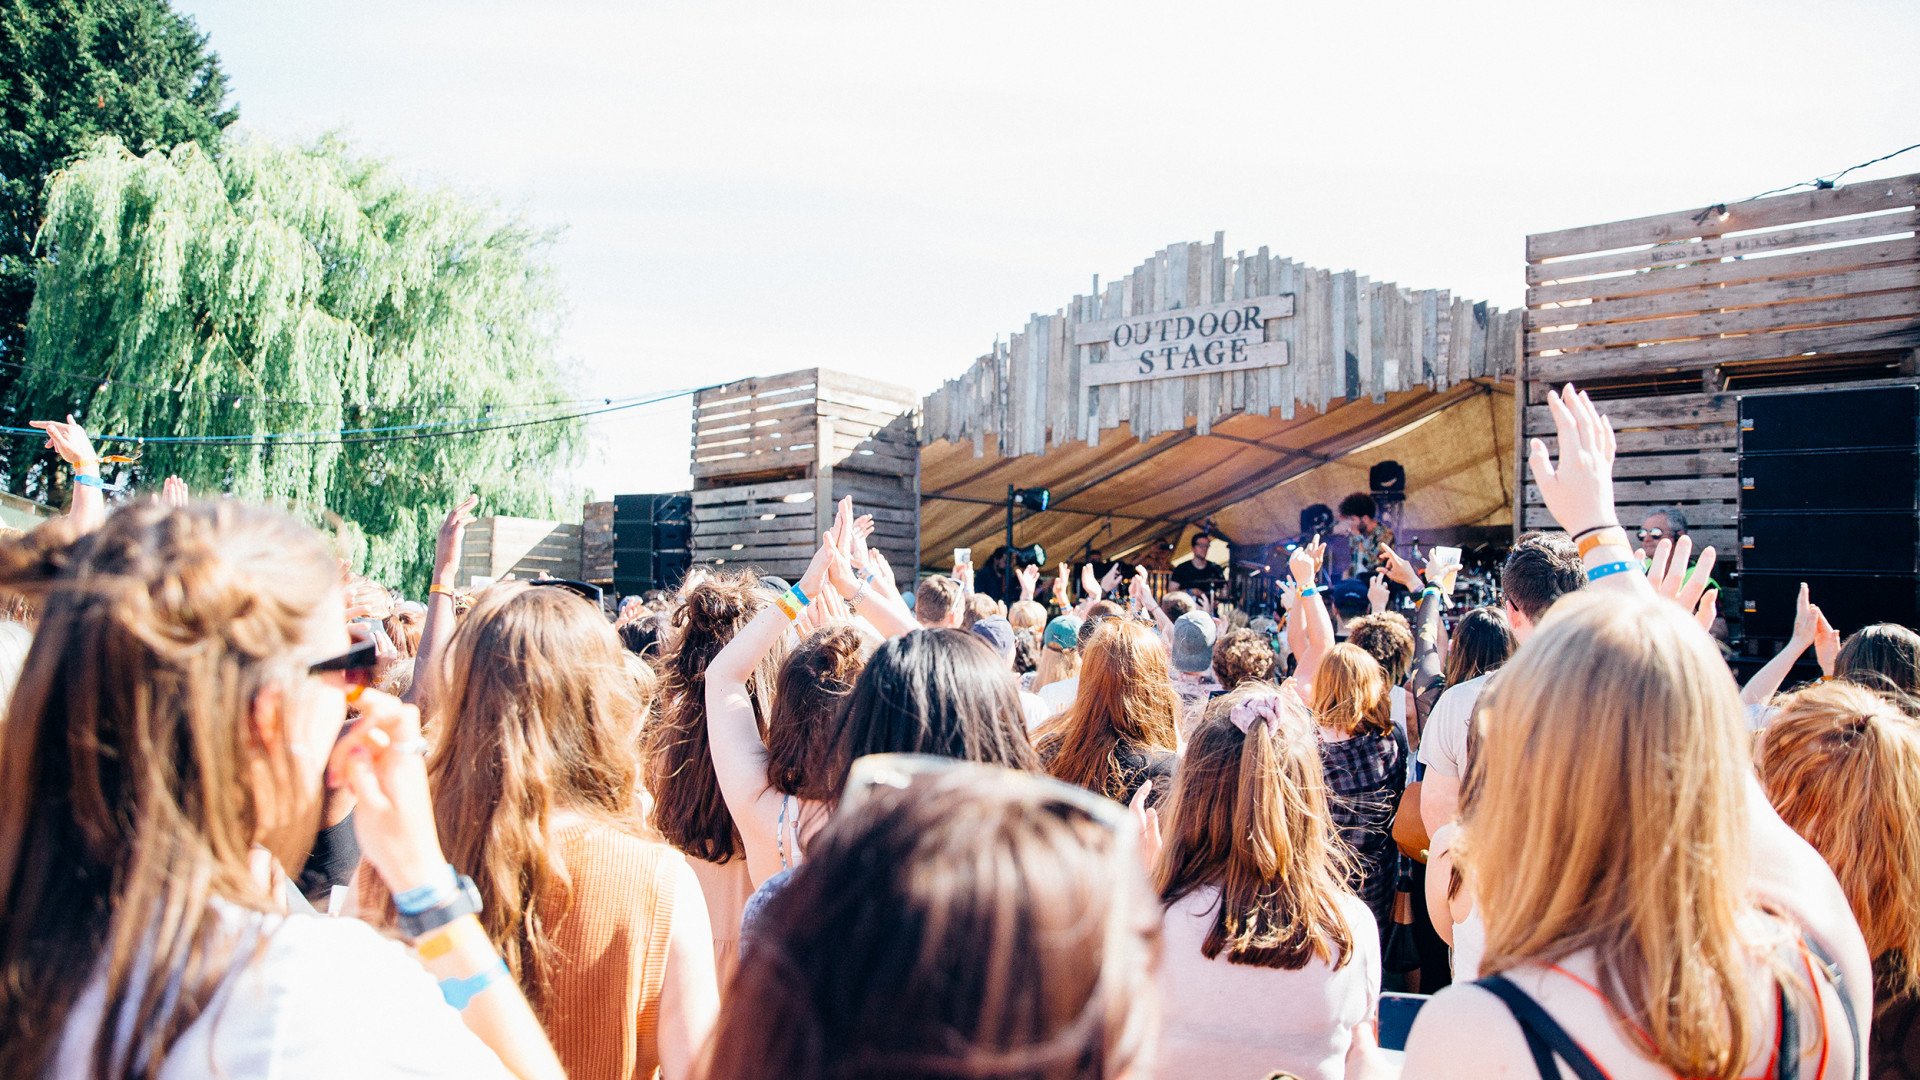 The outdoor stage at Barn on the Farm festival